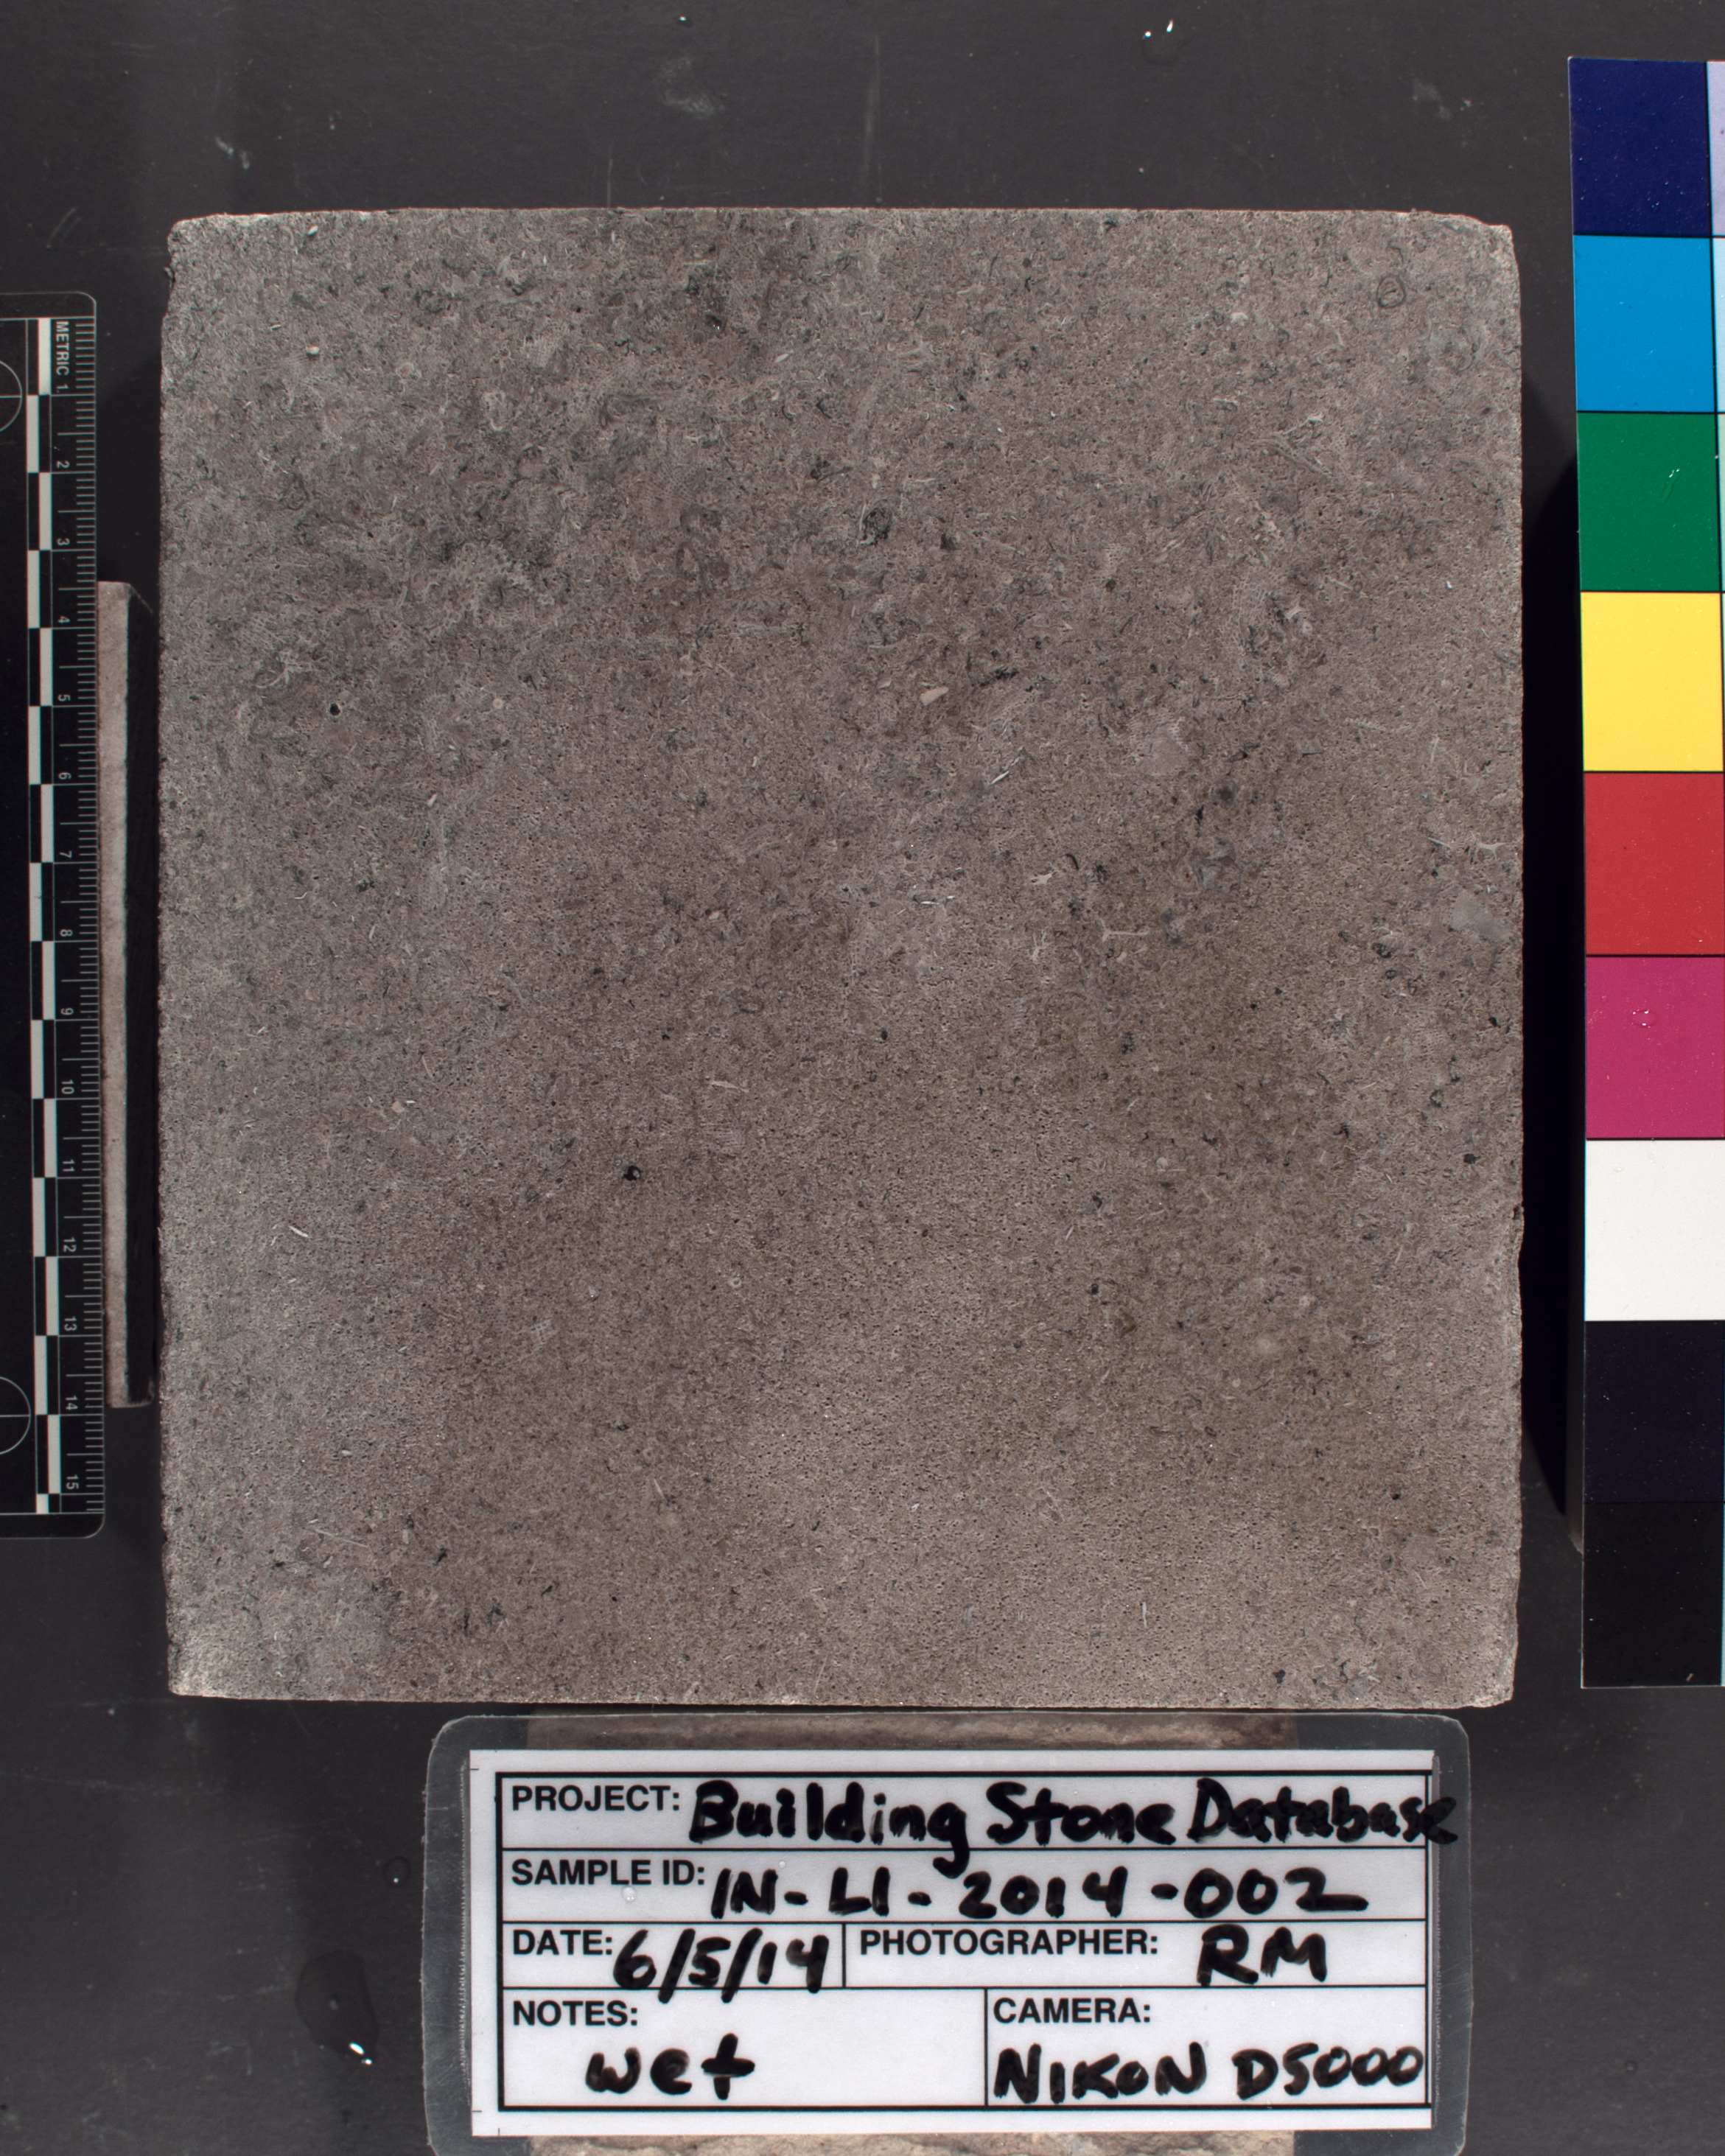 Image of specimen in wet conditions. Finish: Smooth sawn